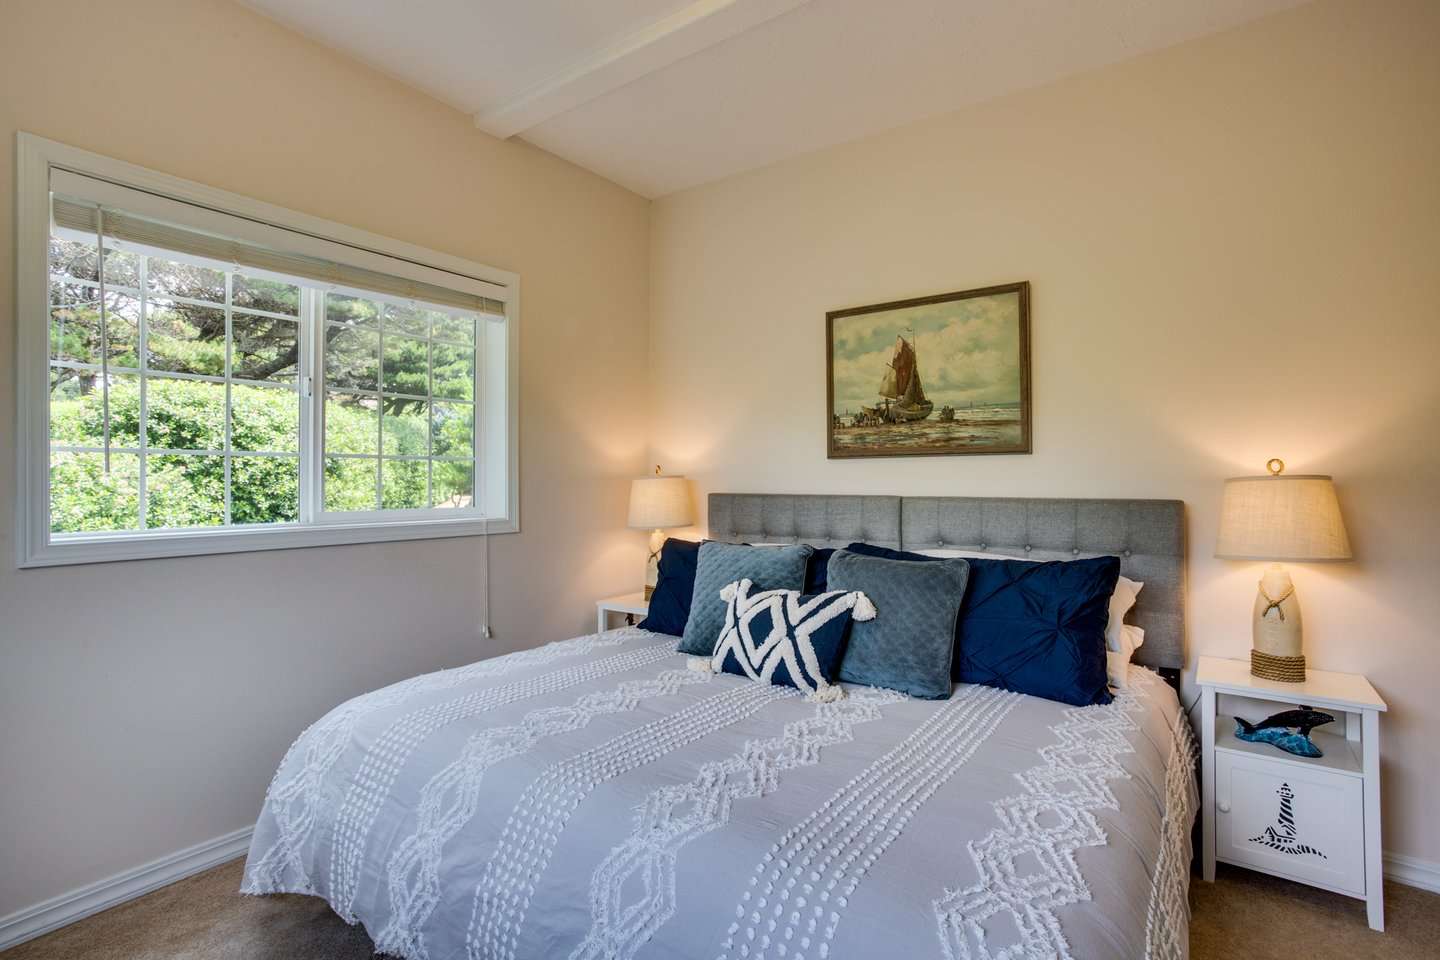 Enjoy this comfy king bed in another sunny bedroom.